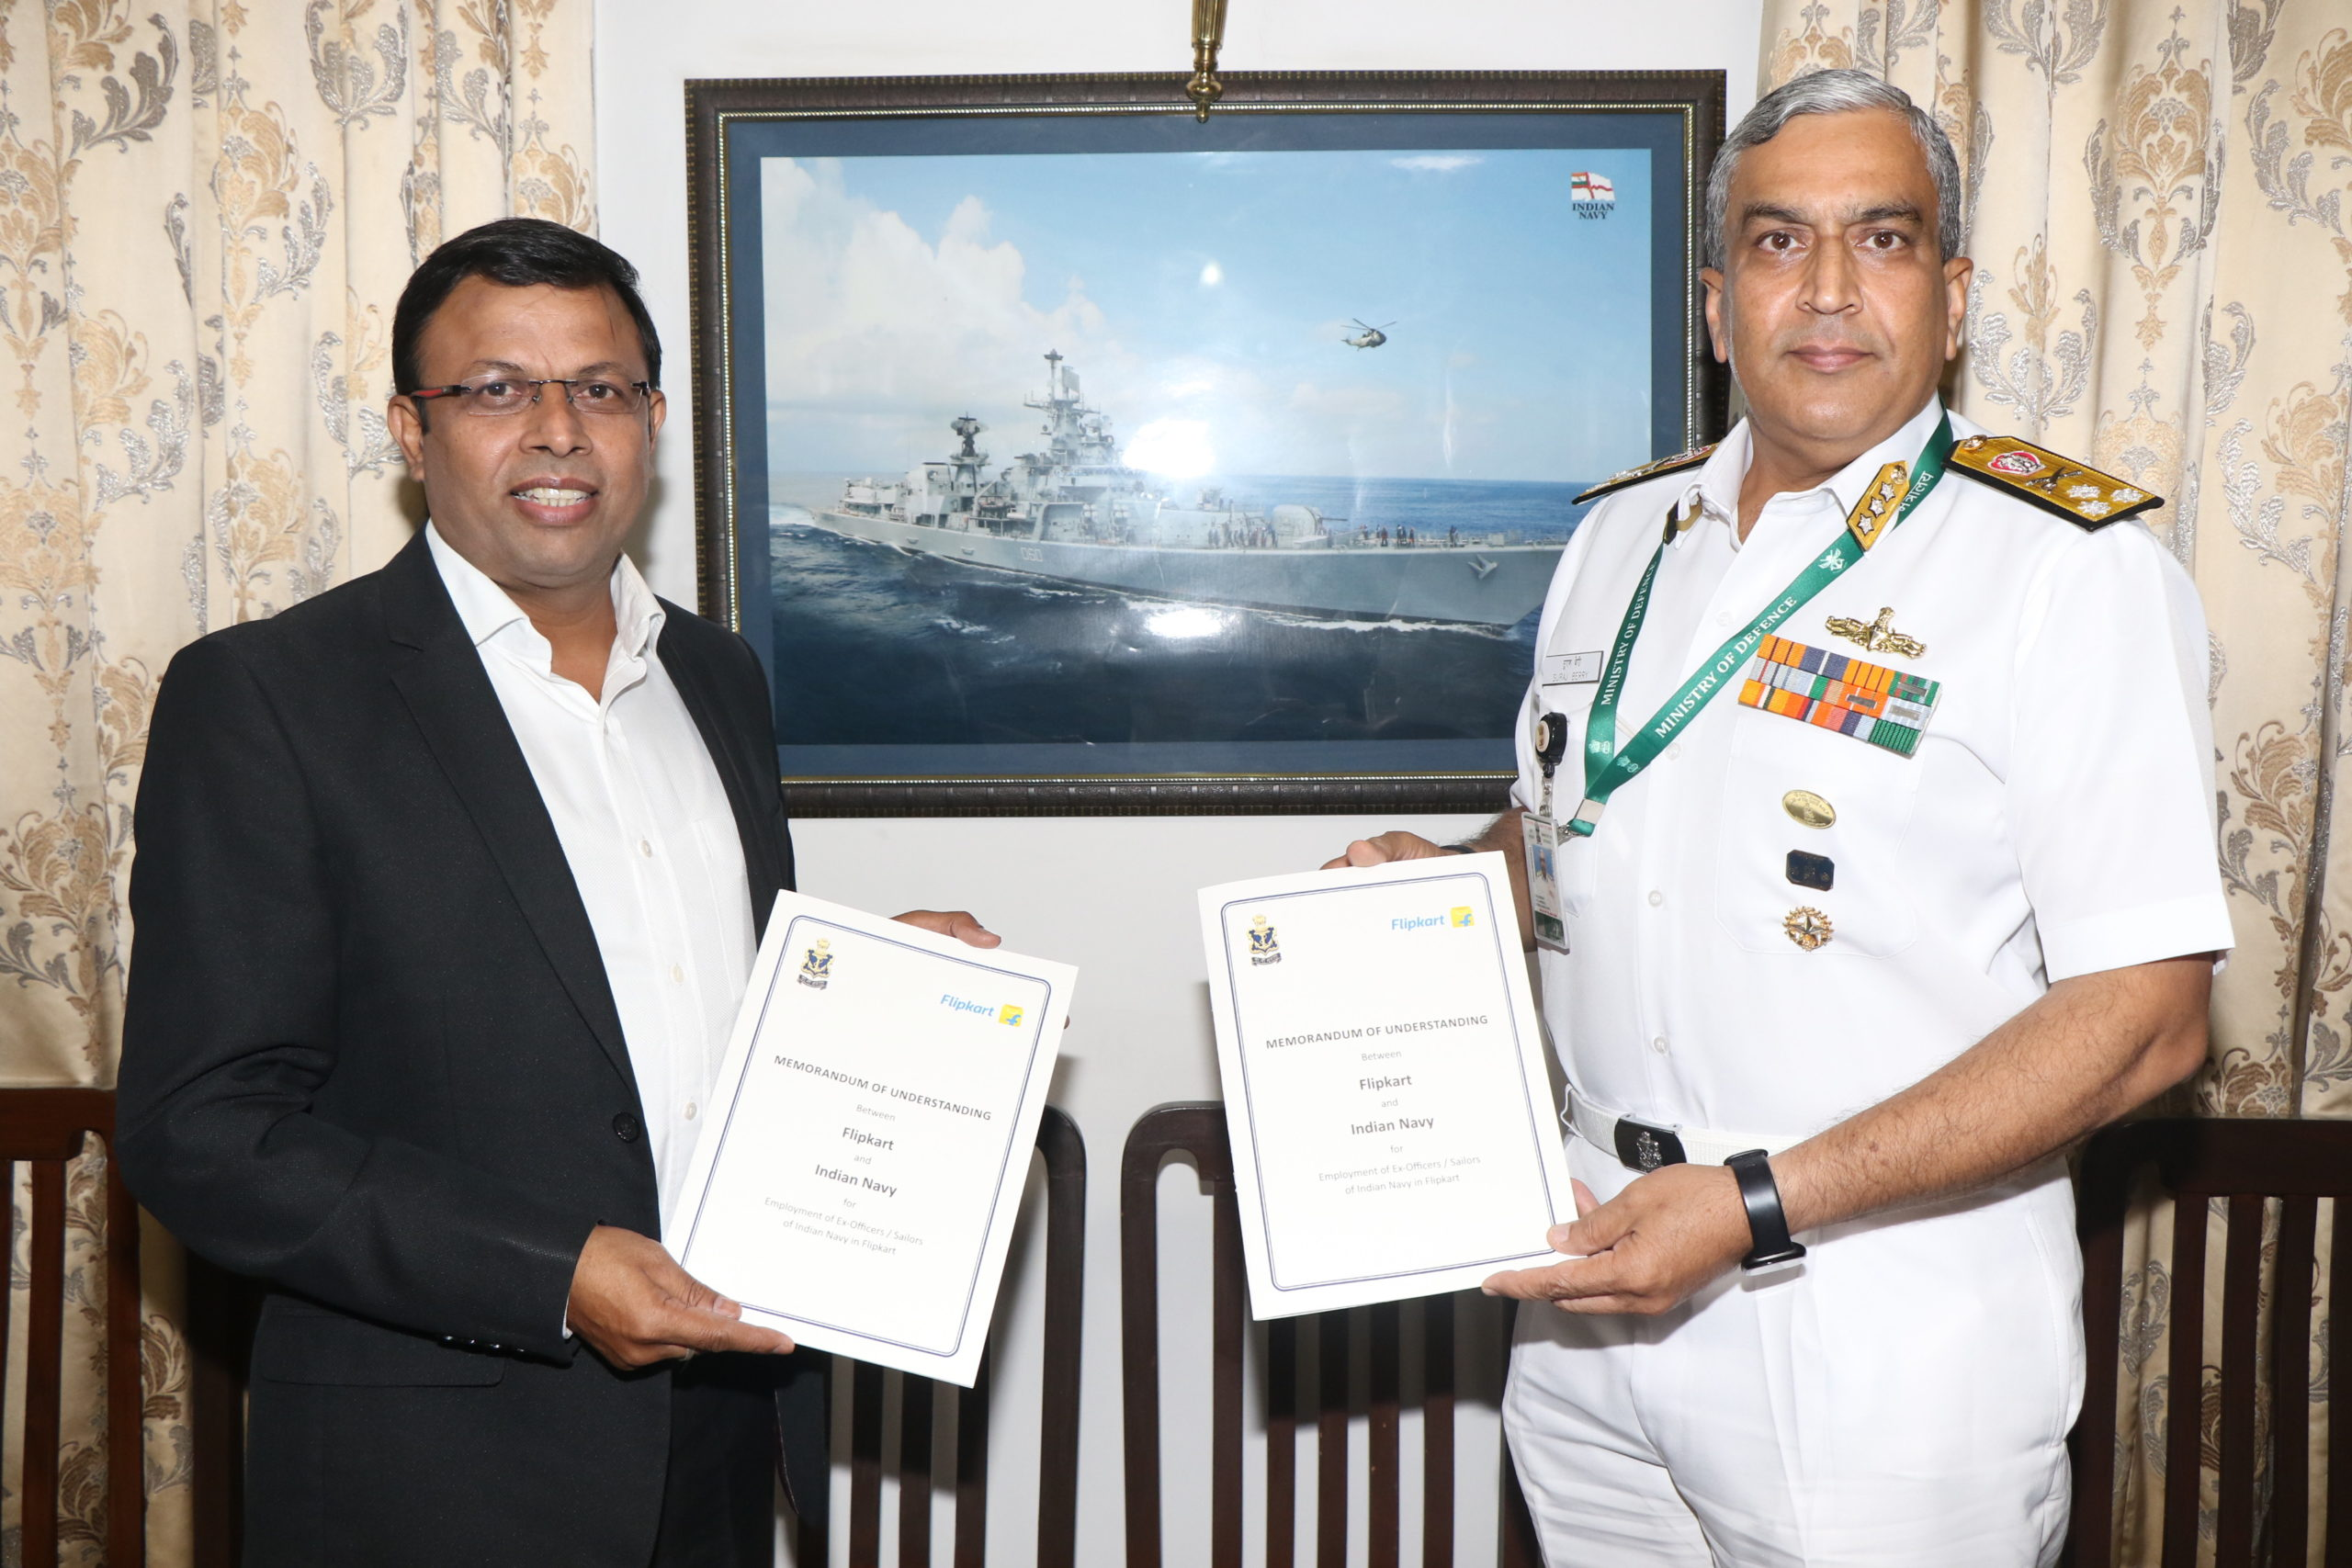 INDIAN NAVAL PLACEMENT AGENCY AND FLIPKART SIGN MOU TO FIND OPPORTUNITIES FOR THE RESETTLEMENT OF NAVY VETERANS